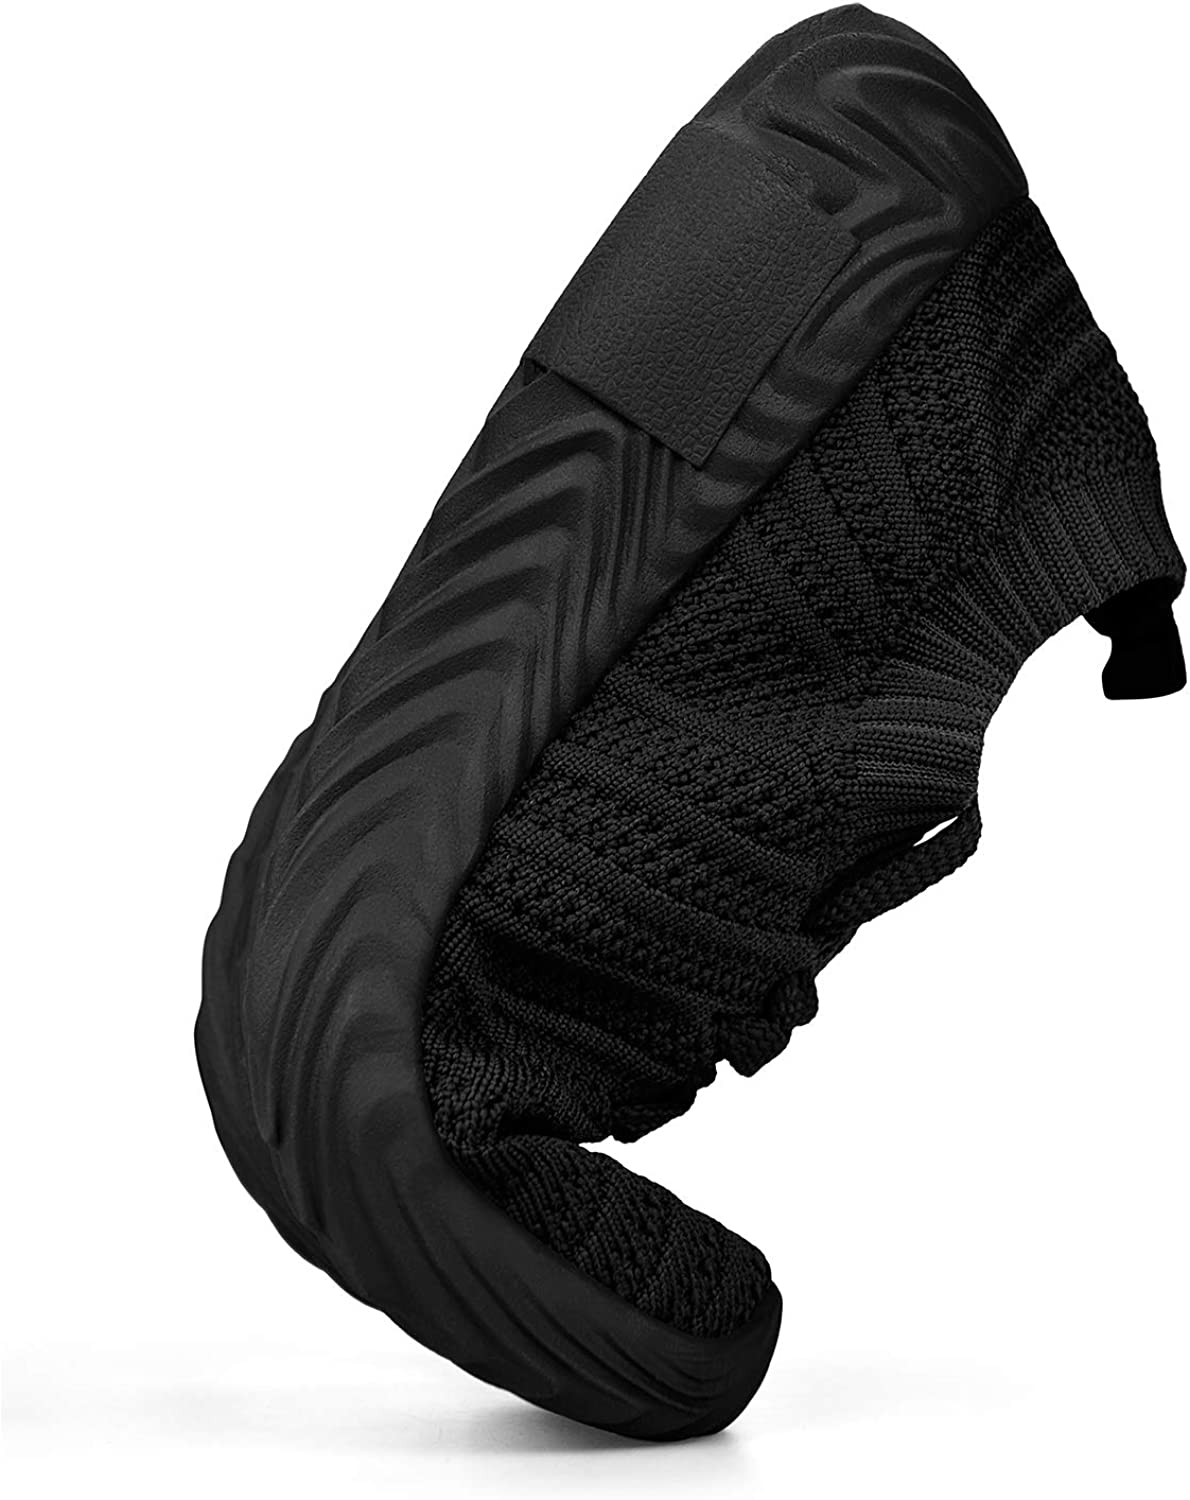 QANSI Boys Grils Sneakers Lightweight Athletic Sports Running Shoes Breathable Tennis Sports Shoes Black 6.5 Big Kid